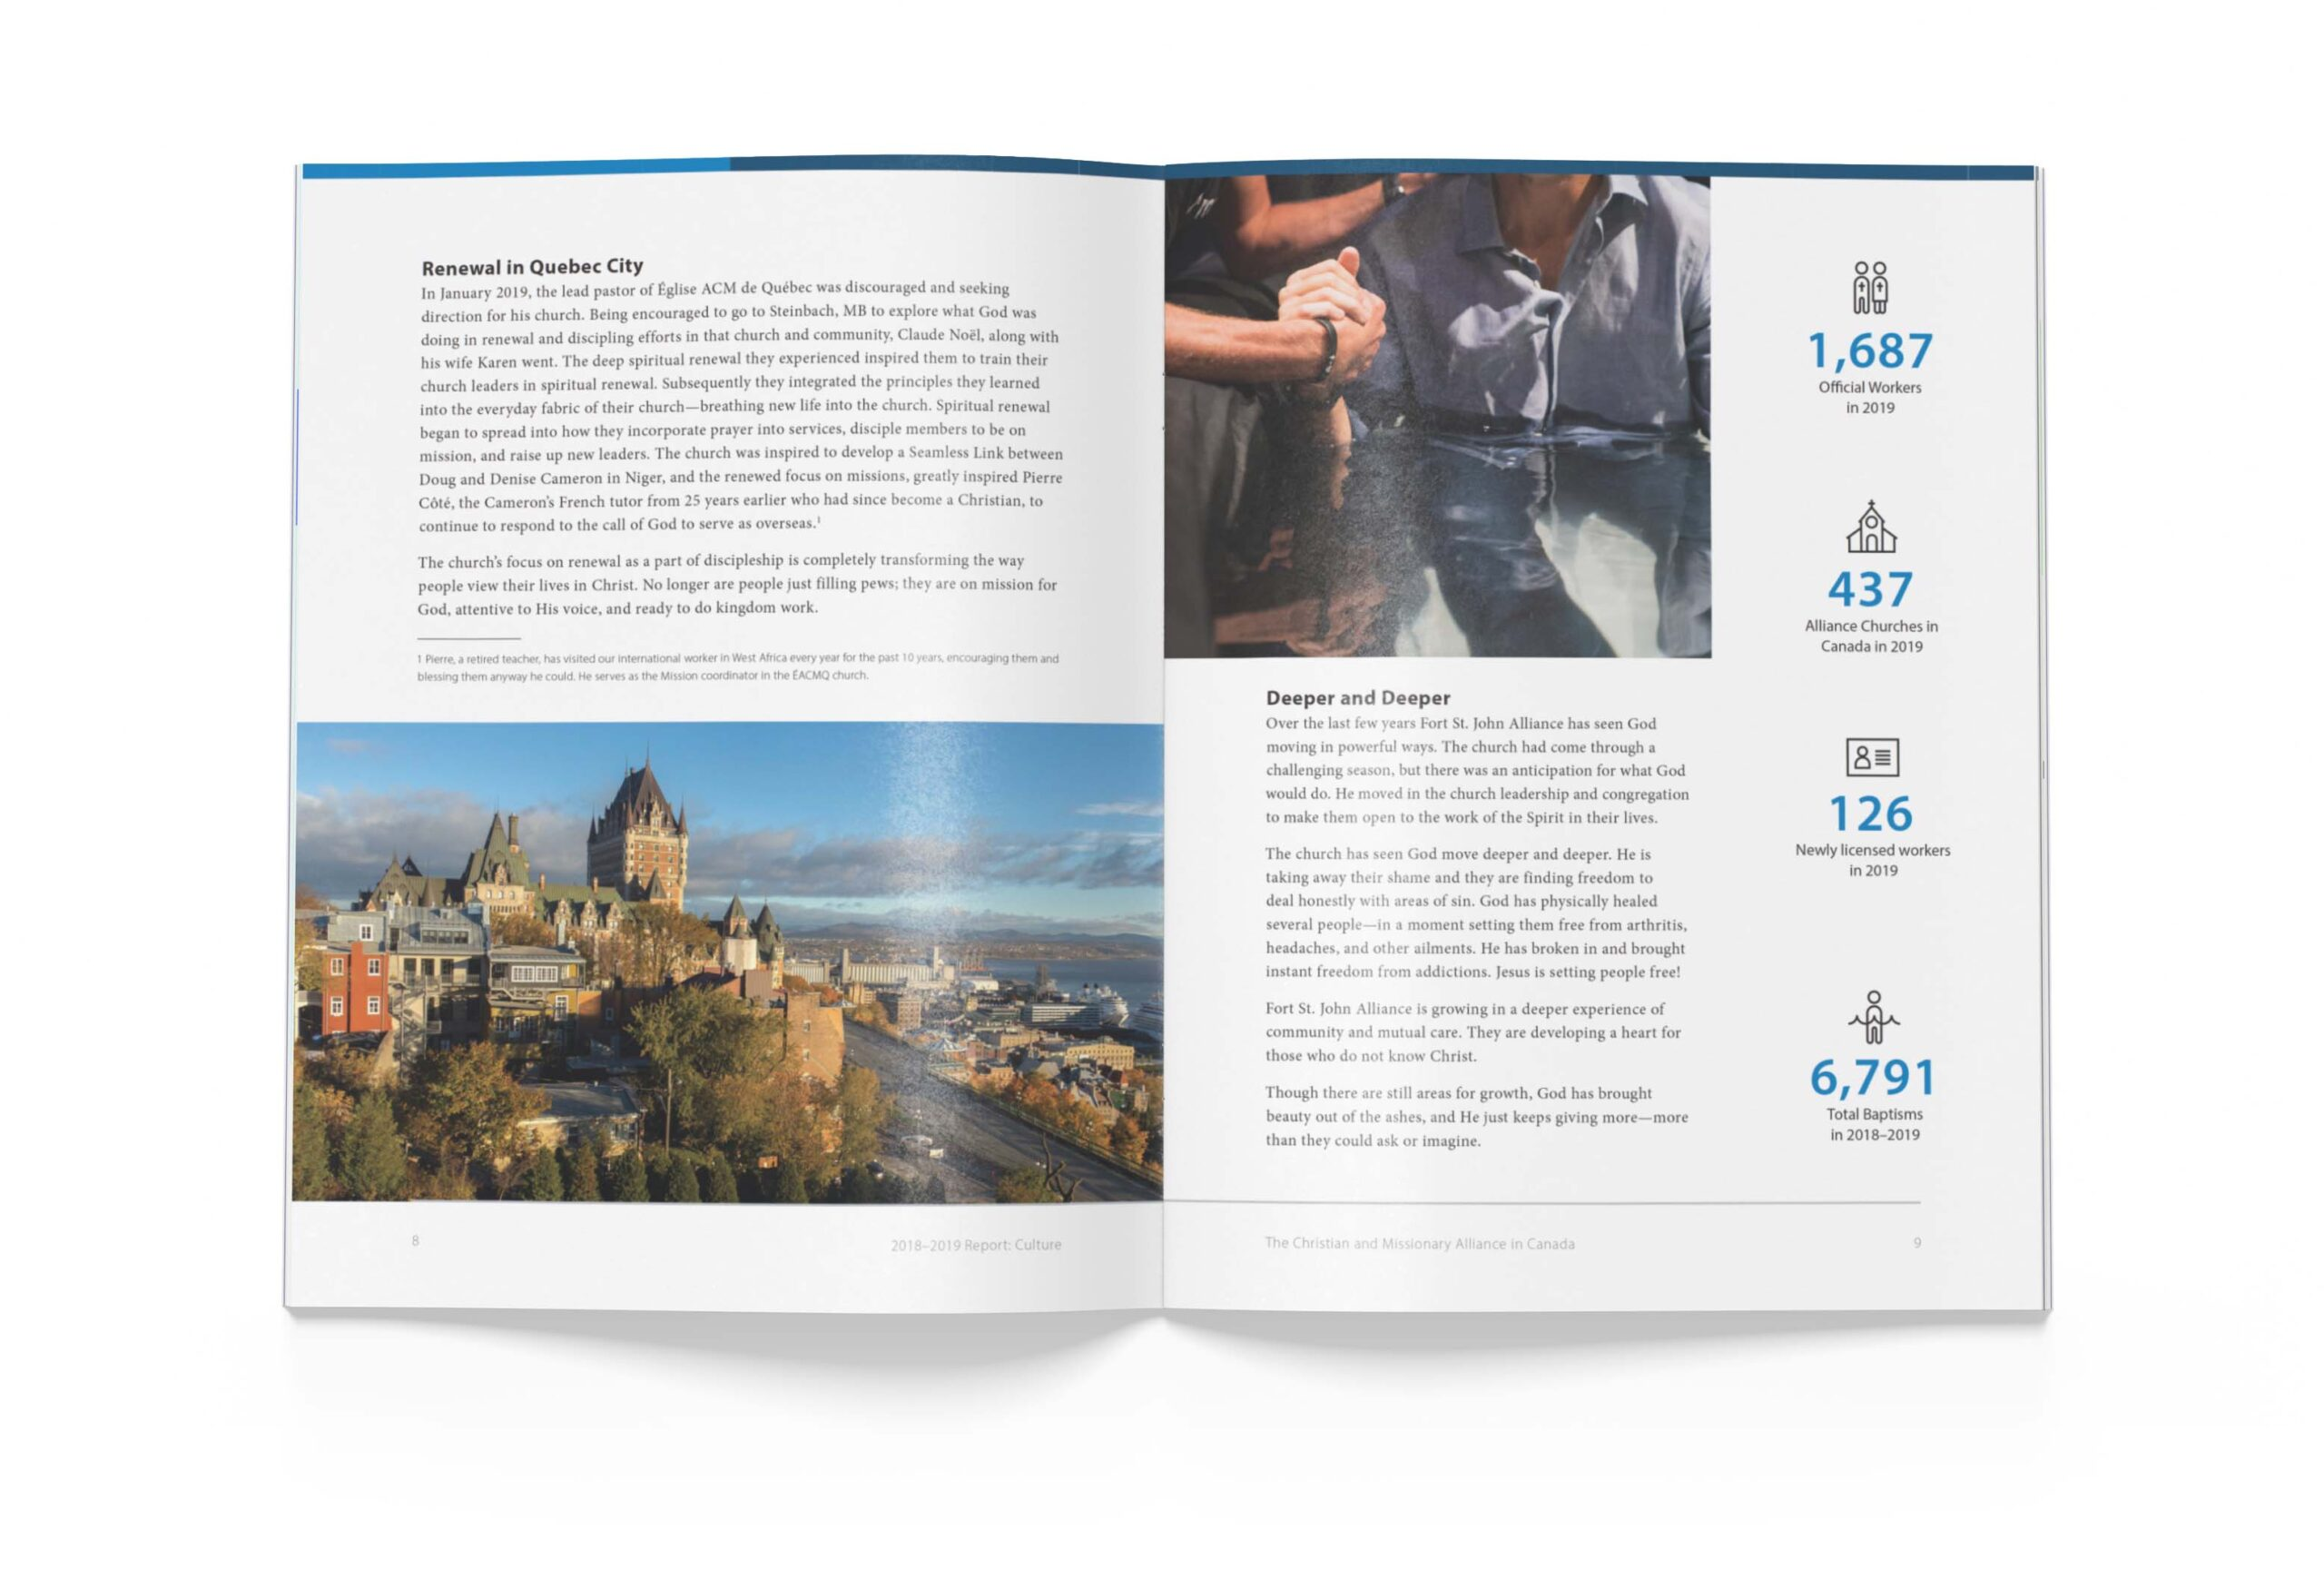 Page 8 of The Alliance Canada 2018-2019 Biannual Report